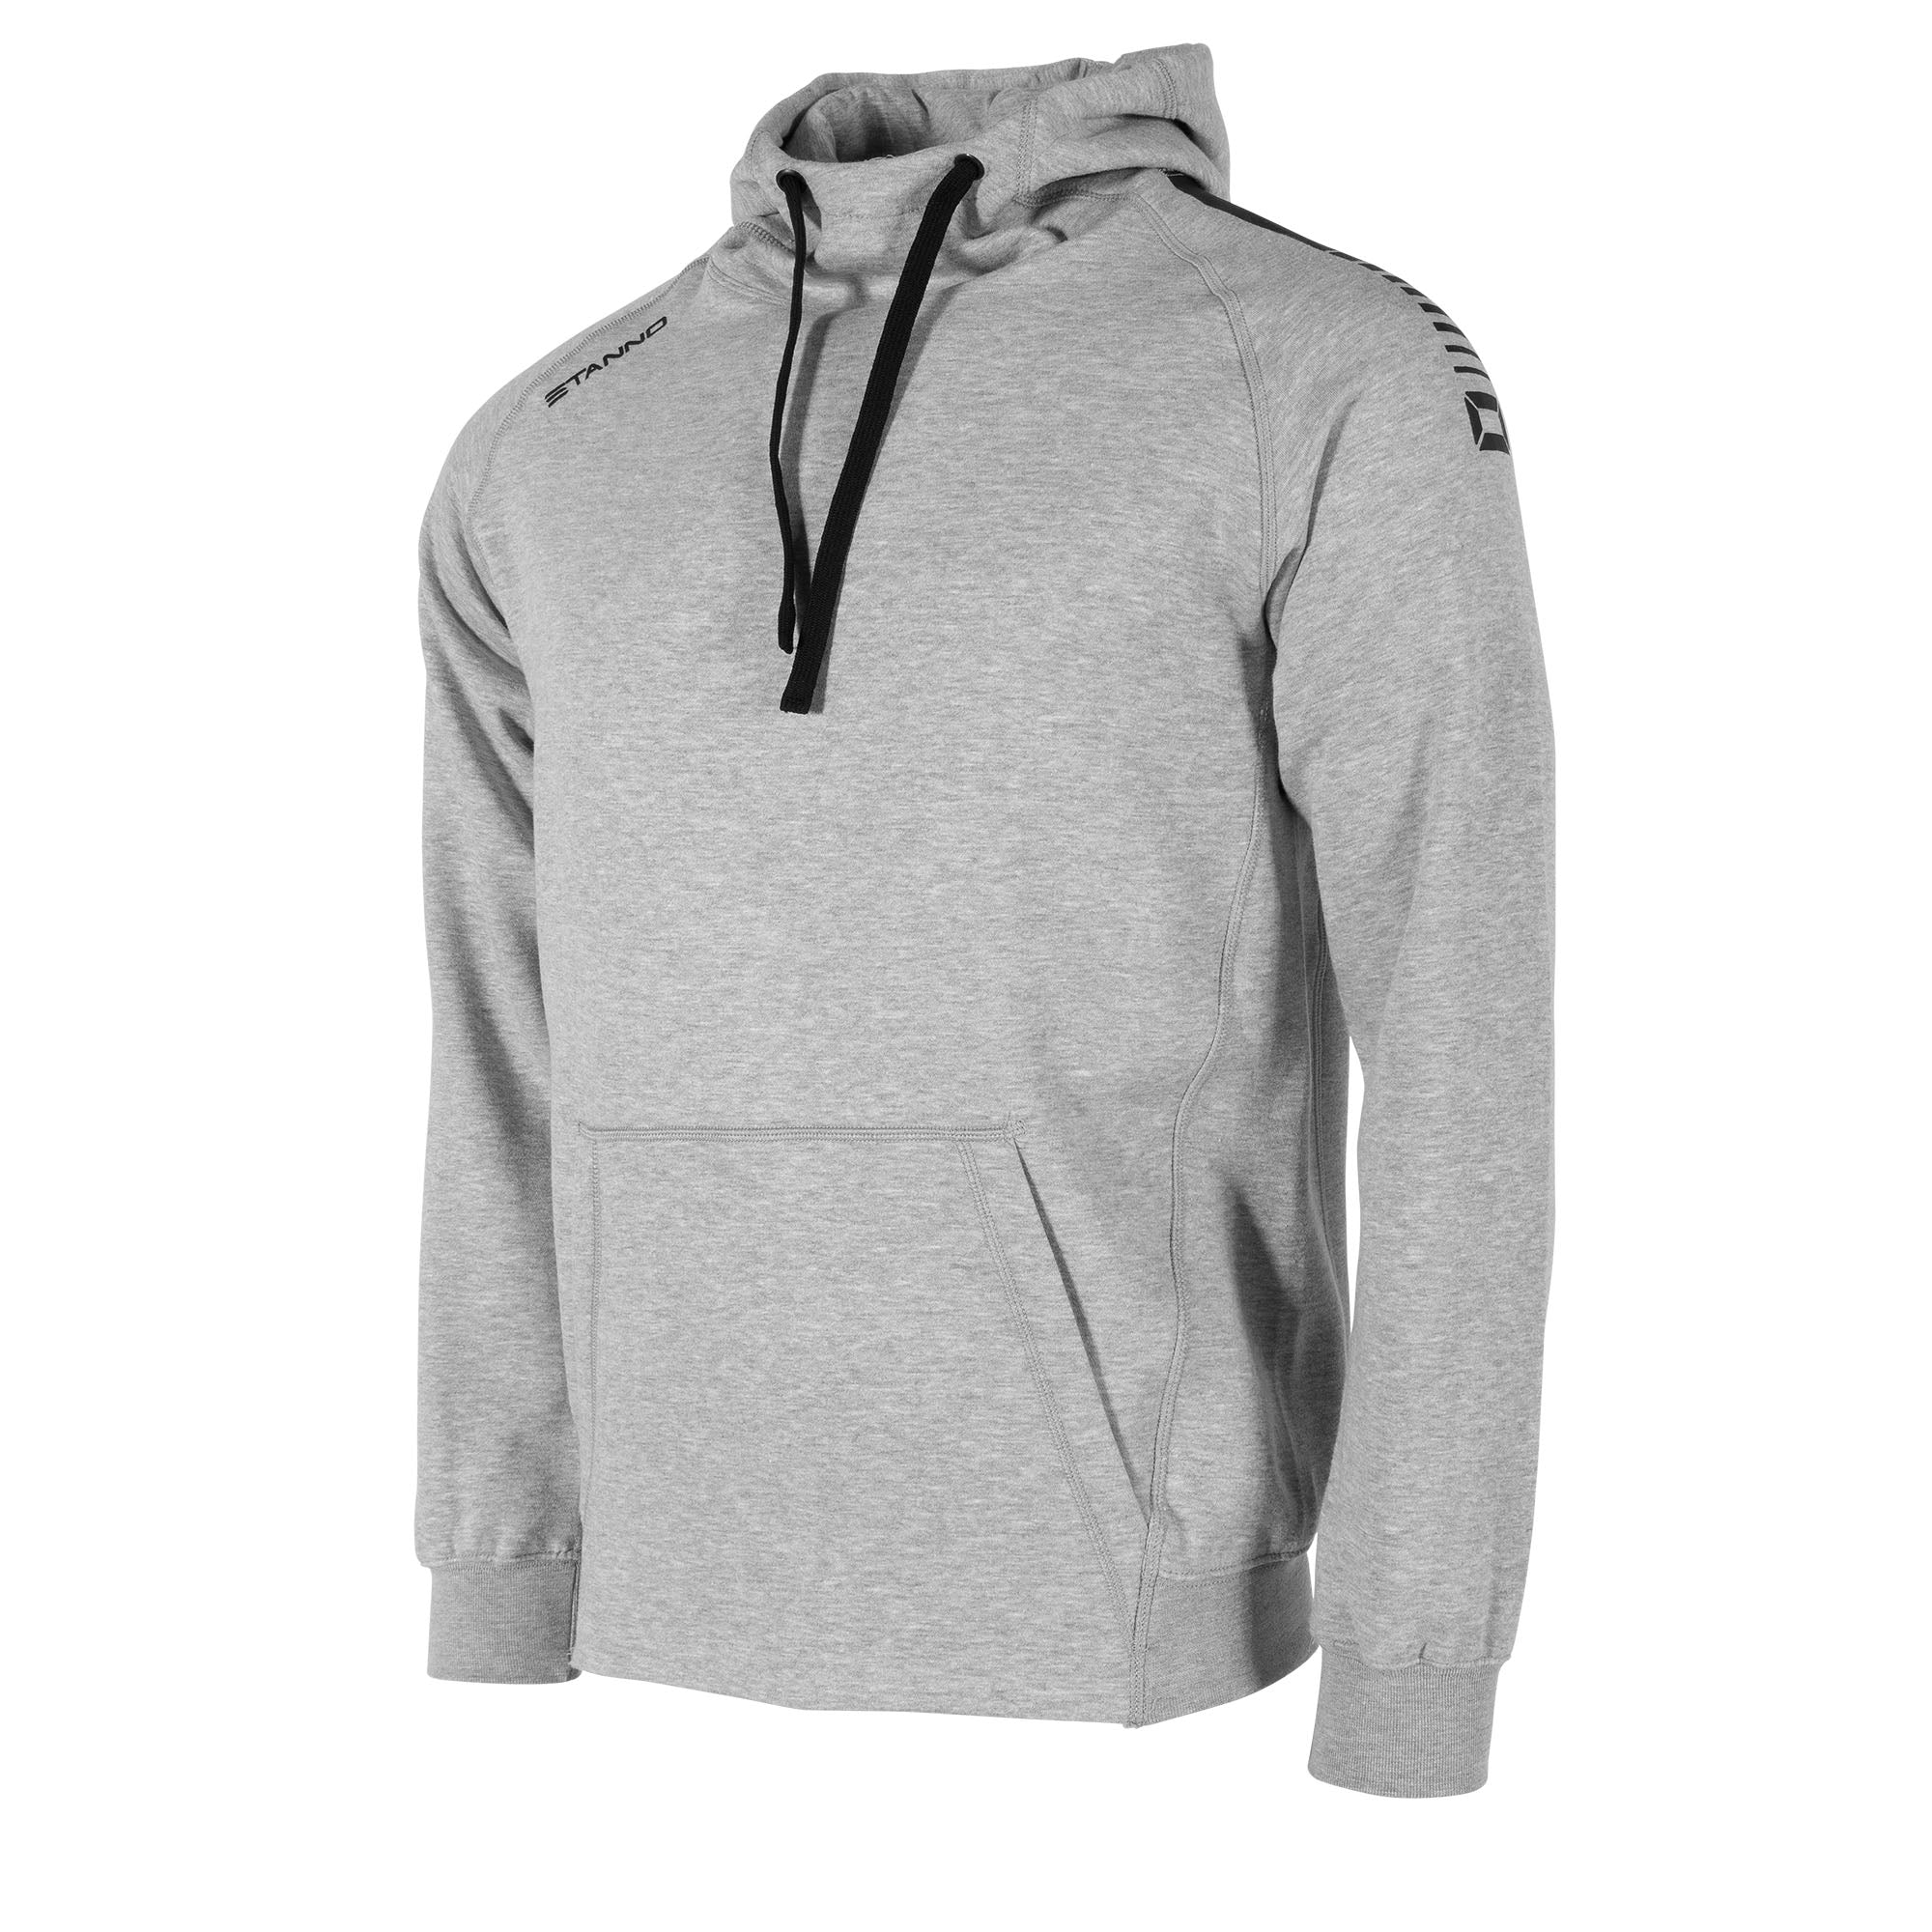 front view of Stanno Ease Hoodie in grey with Kangaroo pouch, and printed black logo on shoulders.